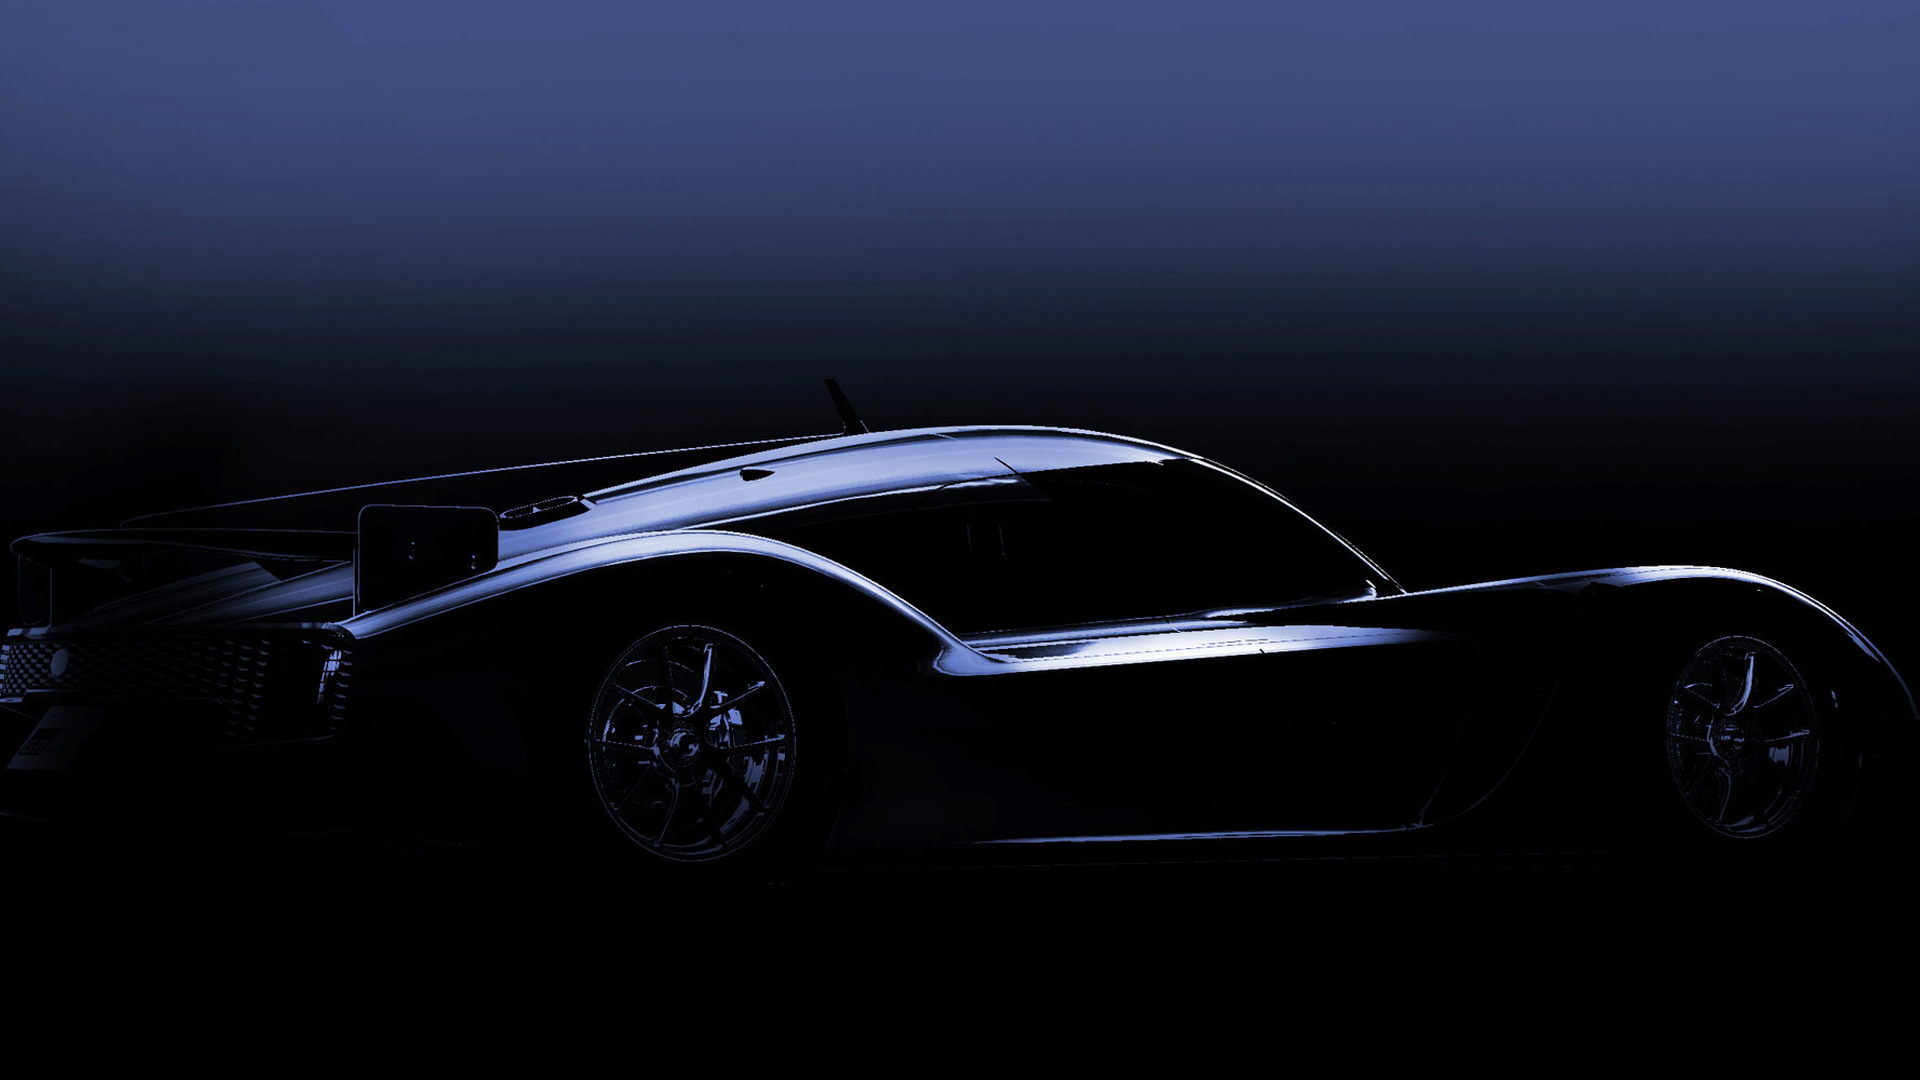 Le Salon Le Mans Toyota Boss Hints At Le Mans Inspired Hybrid Sports Car